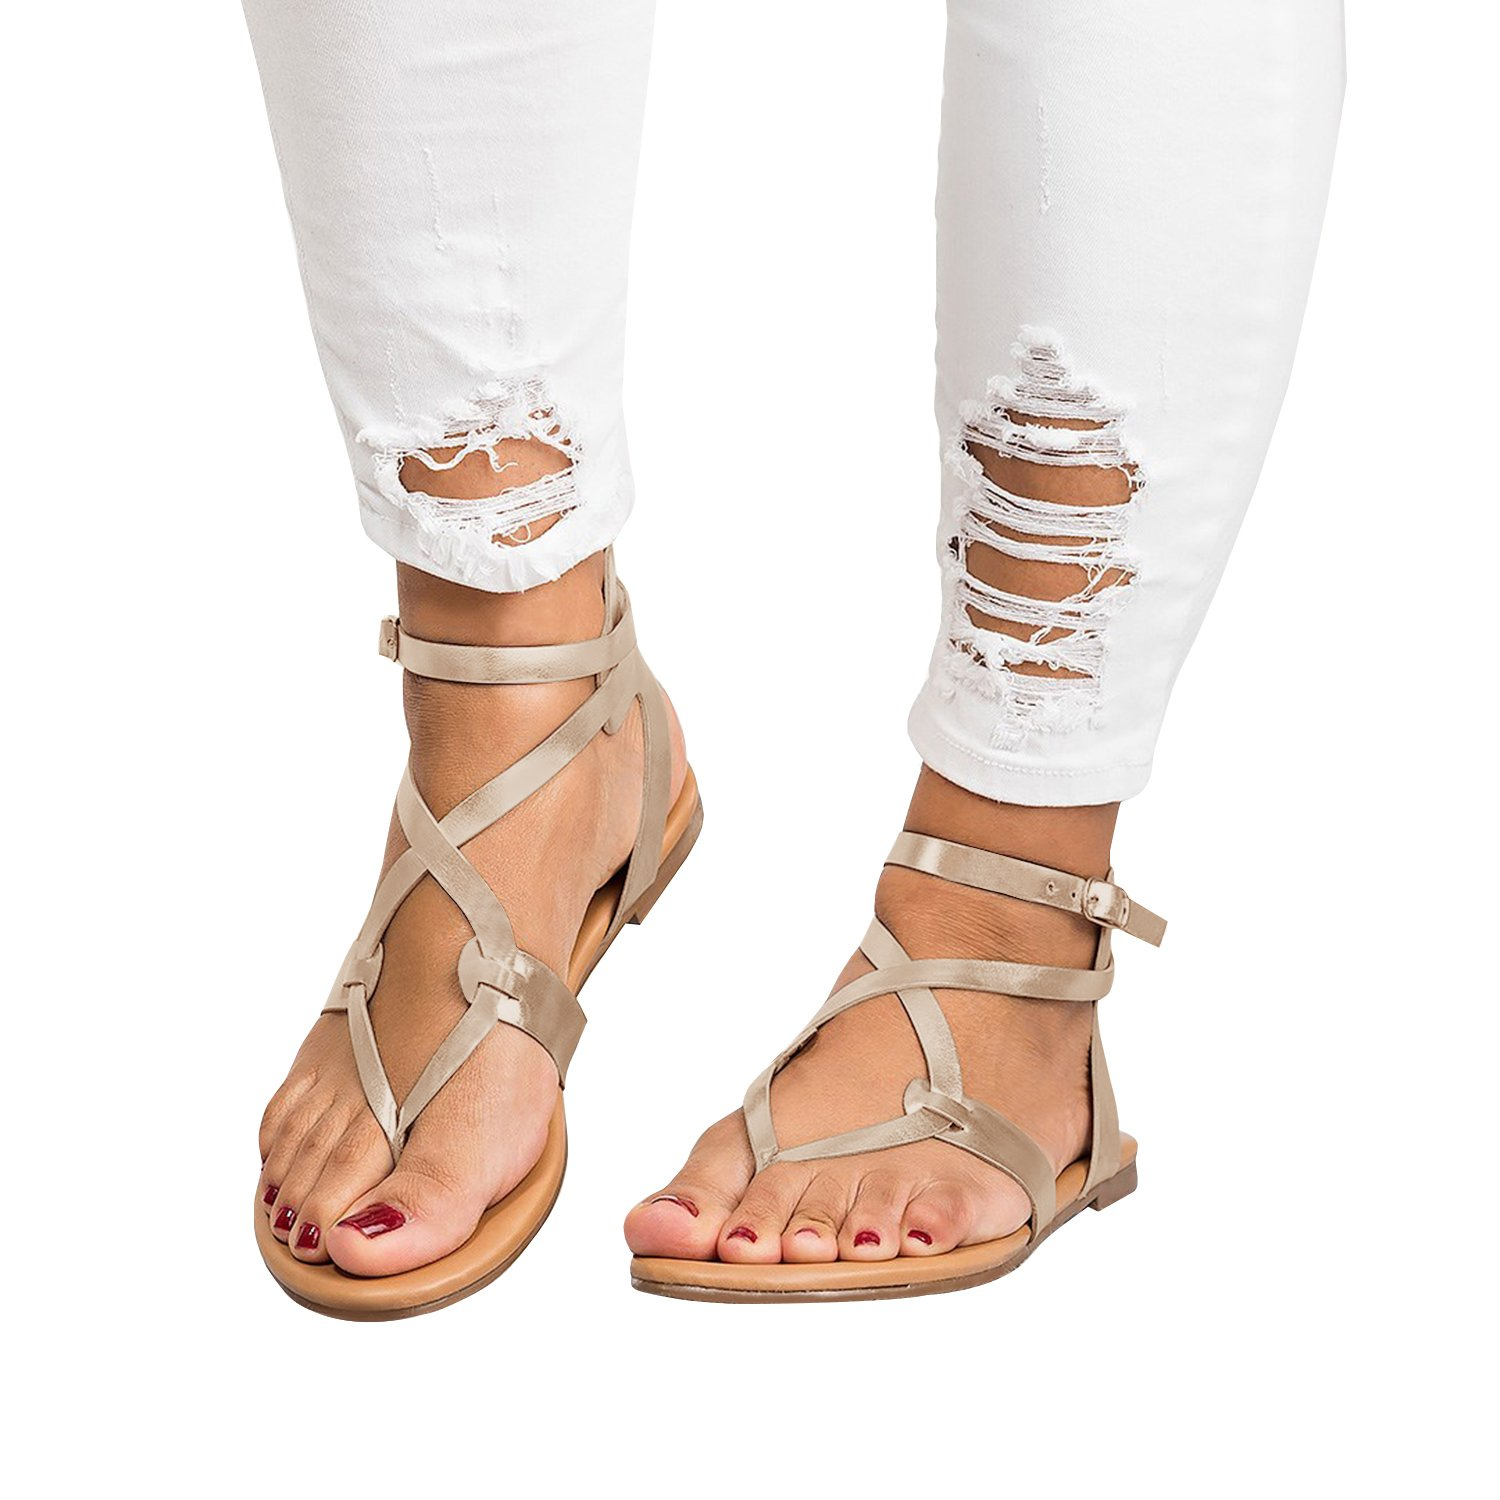 Ferbia Womens Summer Sandals Flat Ankle Buckle Criss Cross Gladiator Thong Flip Flop Casual shoes (10 B(M) US, Silvery)